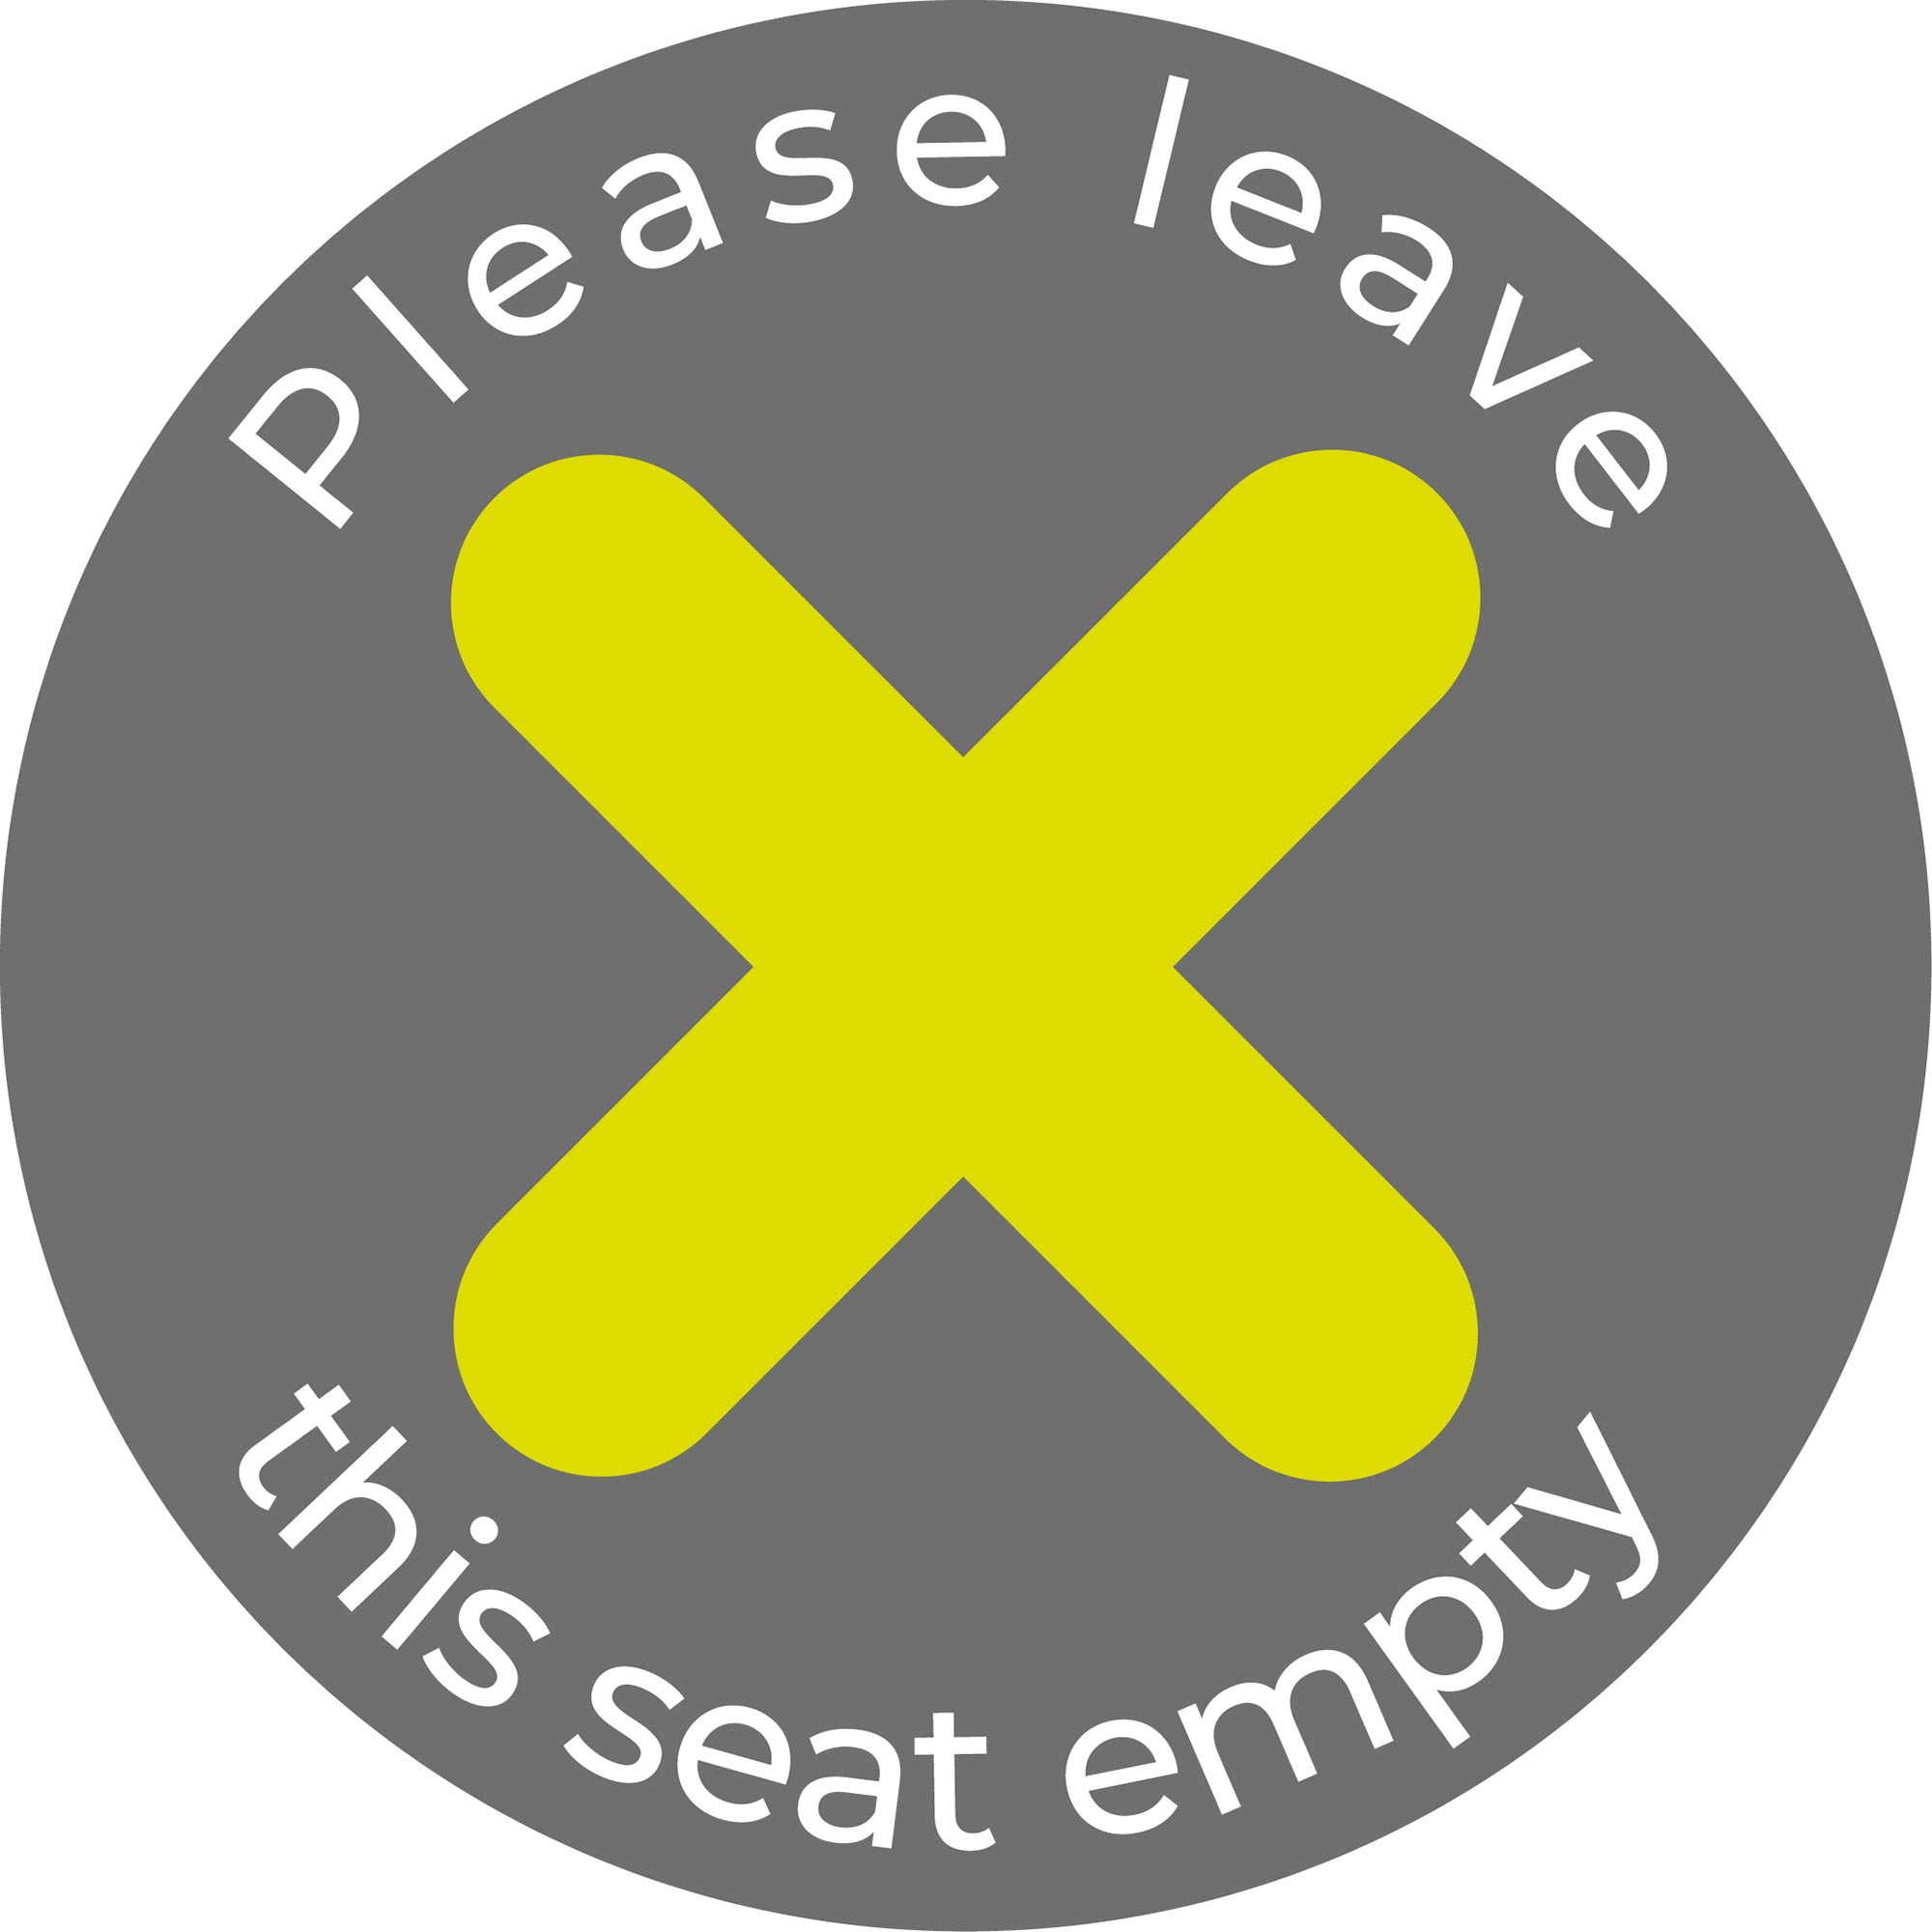 Please Leave Seat Empty - Grey Sticker